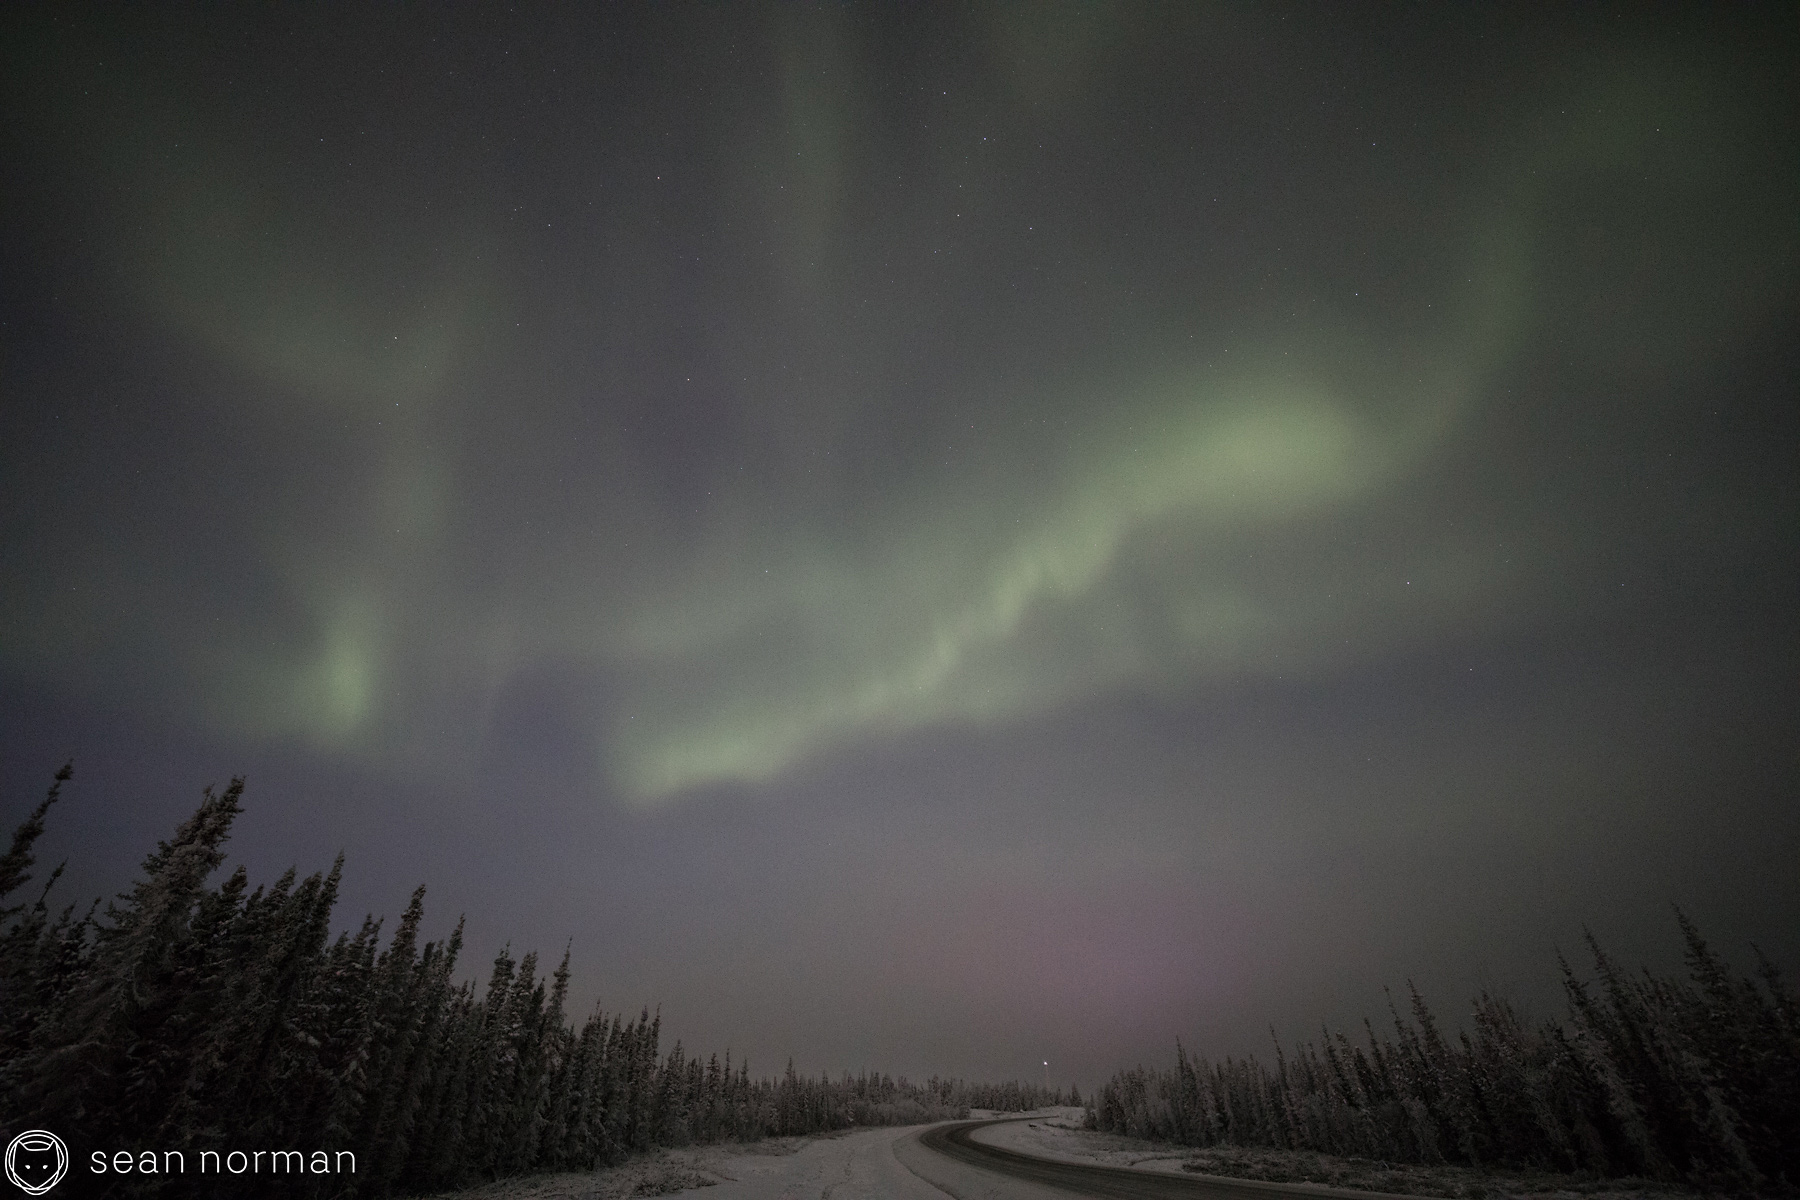 December Aurora Borealis Tour Yellowknife Canada - 5.jpg